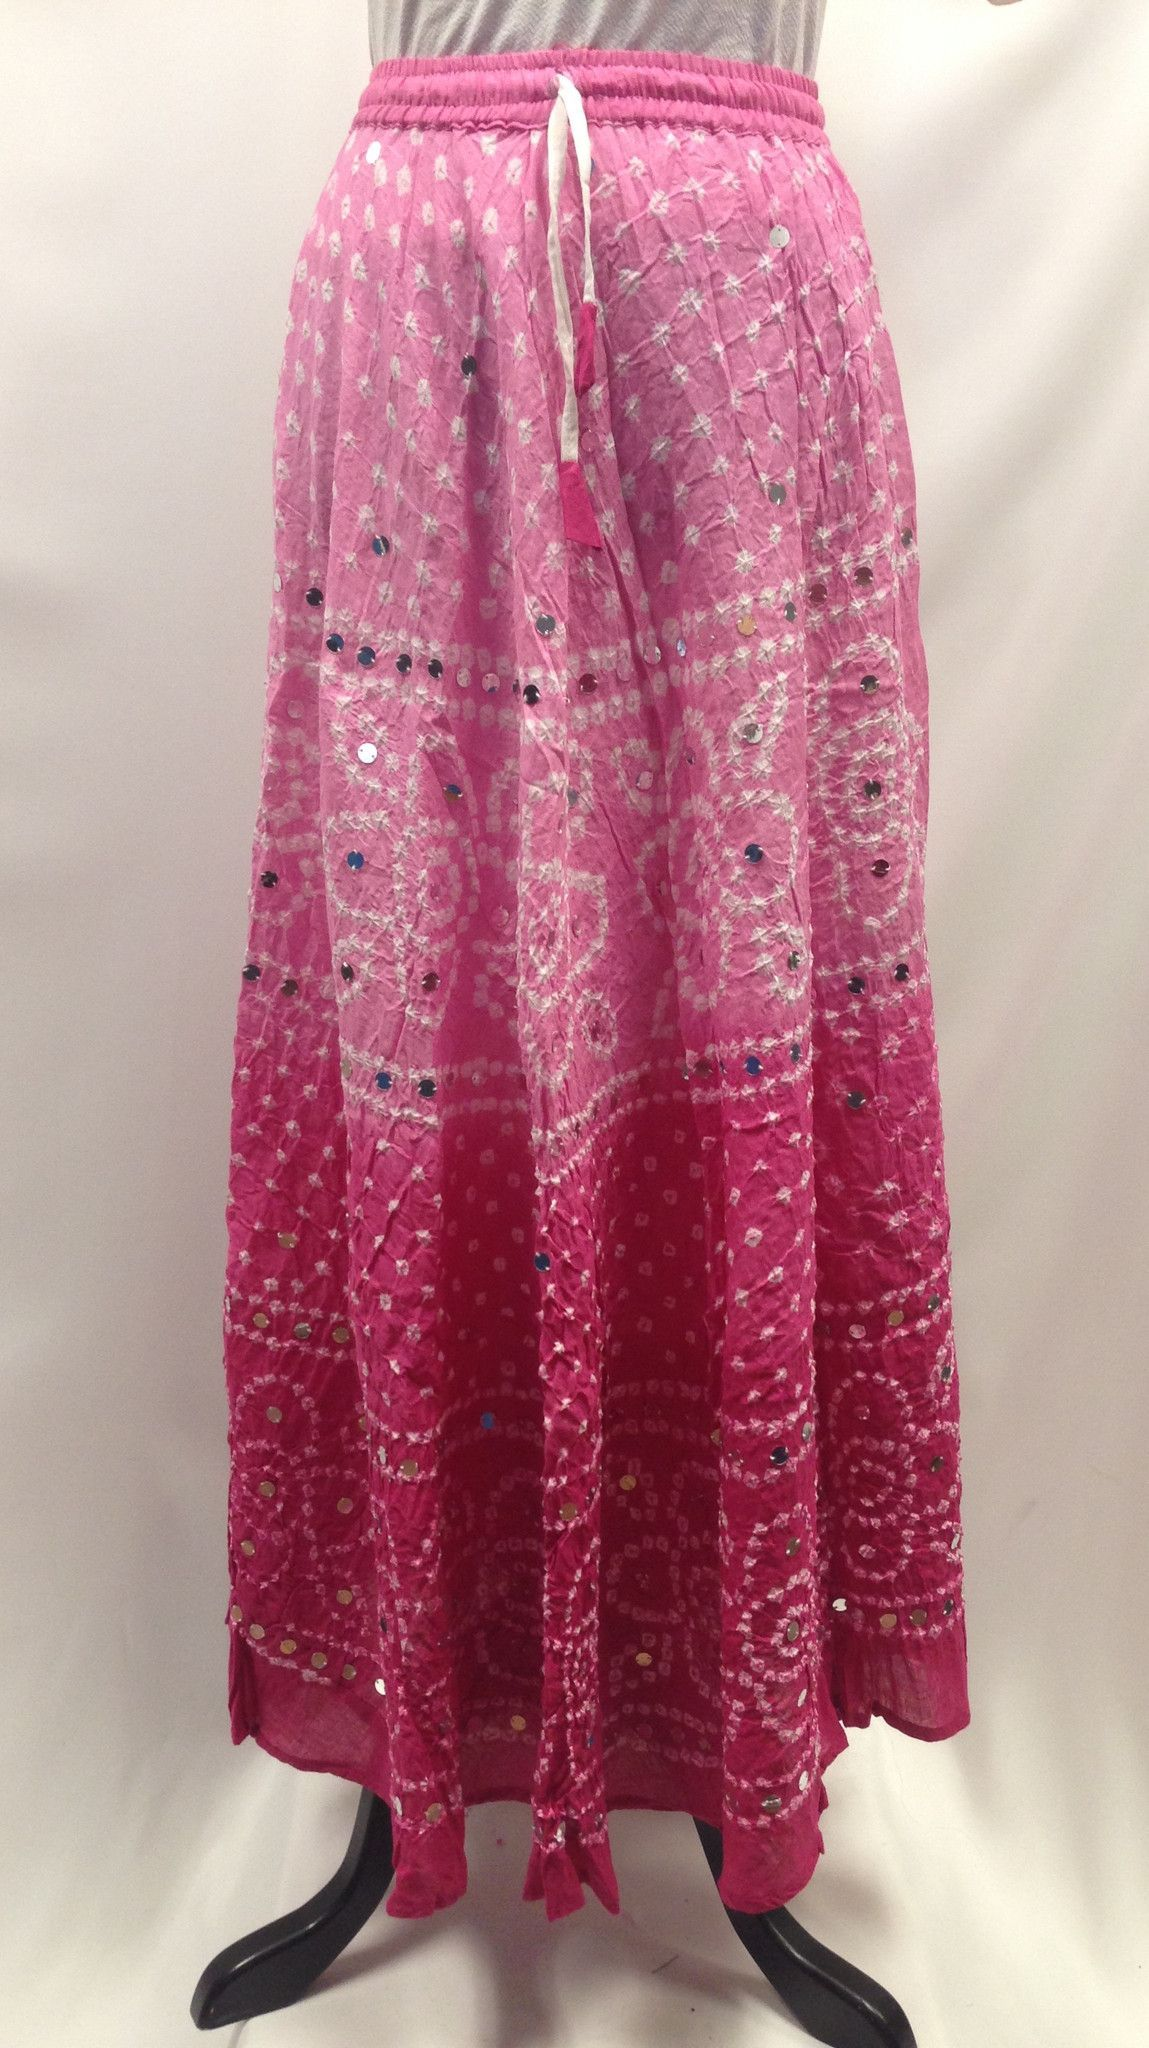 492f66b02 Bandhani Tie-Dye Skirt from Jaipur with Large Sequins- Baby-Pink ...